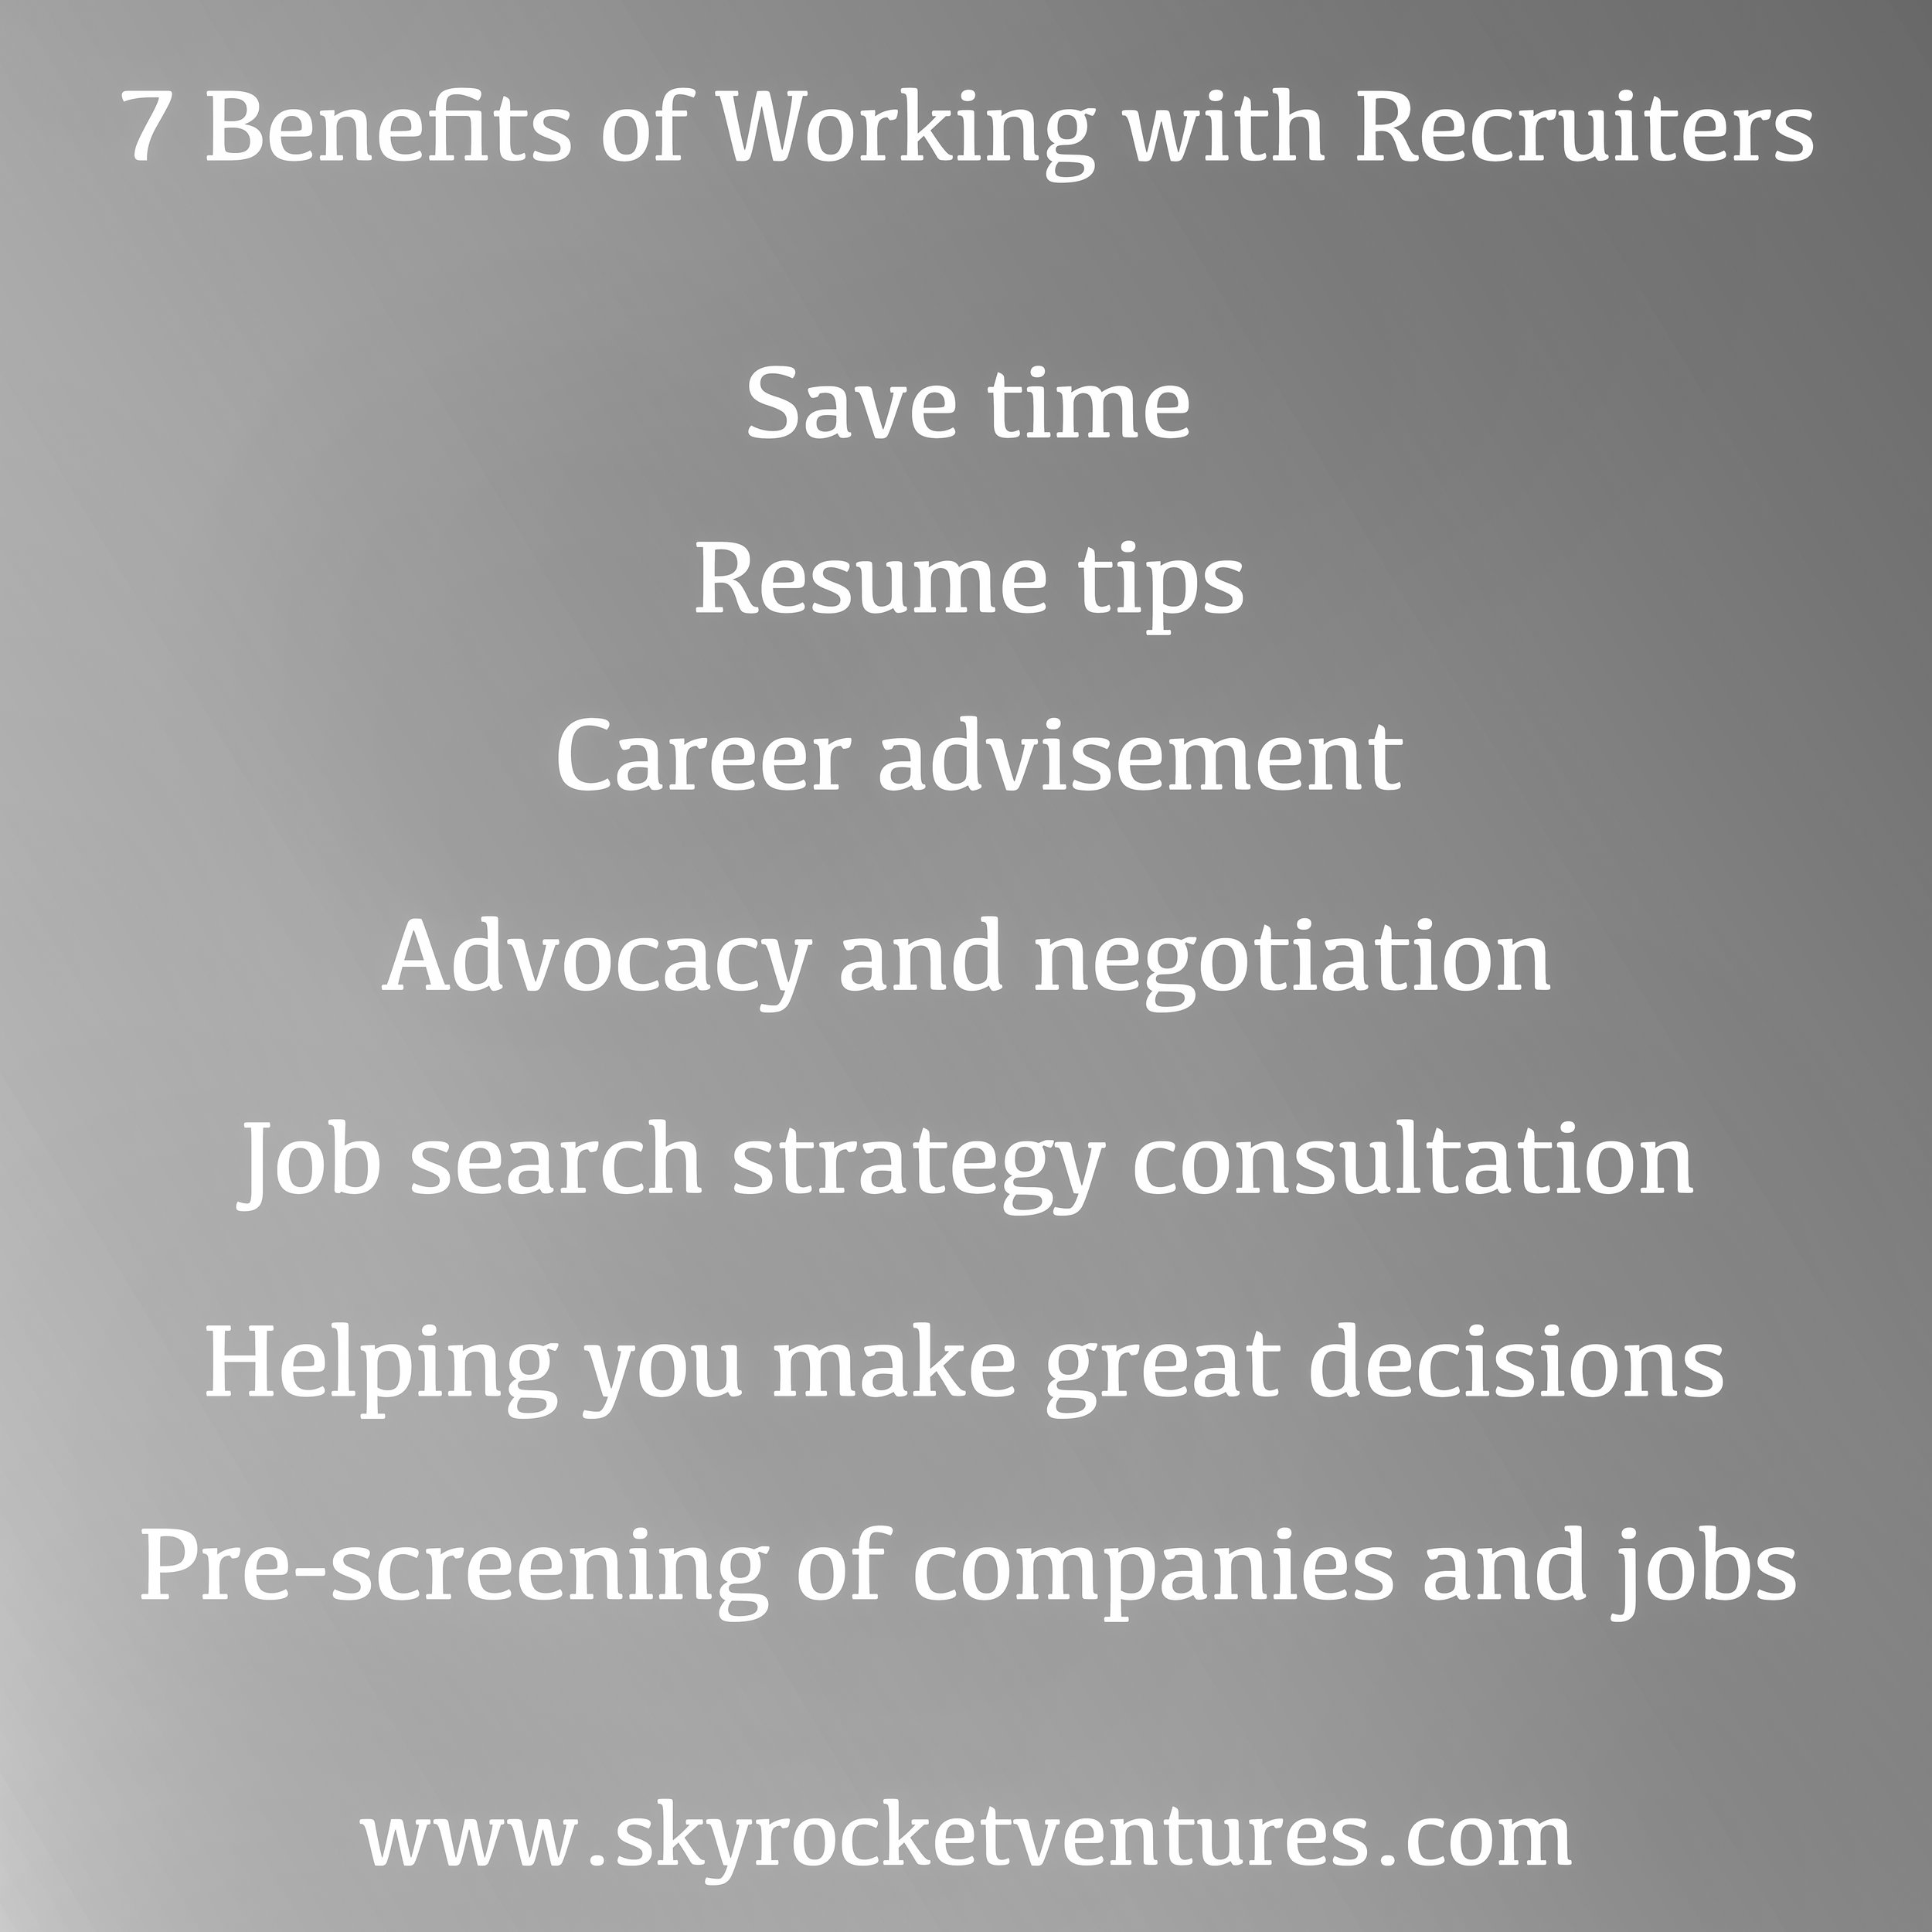 What are the Top 7 Benefits of Working with Recruiters?  1.) Save Time — One of the many benefits of working with a recruiter is how much time you save. At Skyrocket, we understand what it takes to get ahead of the competition, and we work tirelessly with our clients and candidates so that we all succeed together!  2.) Resume Tips — Your resume is often your ticket to getting each interview. We view hundreds of resumes each day, and know how employers judge them. Due to the volume of resumes employers are receiving, making your resume stand above the rest will be vital. So we may advise you with tips that will help you enhance your resume, conveying your qualifications in a way that will garner the most interest from employers.  3.) Career Advisement — No one has a crystal ball, but with our birds-eye view of the market and experience helping many people, we can share valuable perspectives on a variety of matters of interest to you. Whether you'd like to know what job market conditions look like, what companies are hot, what skills are in demand, or how best to reach your goals, we are happy to share our knowledge and advice. In the event we can't help you, we may advise you to stay where you are, or pursue alternative paths to achieve your goals that do not involve us. If we believe we can help, then we will formulate an action plan with you.  4.) Advocacy and Negotiation — We utilize our ongoing relationships with hiring authorities to ensure your application gets properly reviewed, and do our best to get past any roadblocks to interviews. With any offers you get, we can help negotiate to ensure your offer is strong.  5.) Job Search Strategy Consultation — We get to know you, your skills, and interests. What sets us apart from the many others trying to recruit you and close you on whatever job they happen to be trying to fill is that we have more of a passive and long term focus. This means that we take the time to gain a much deeper understanding of what you want